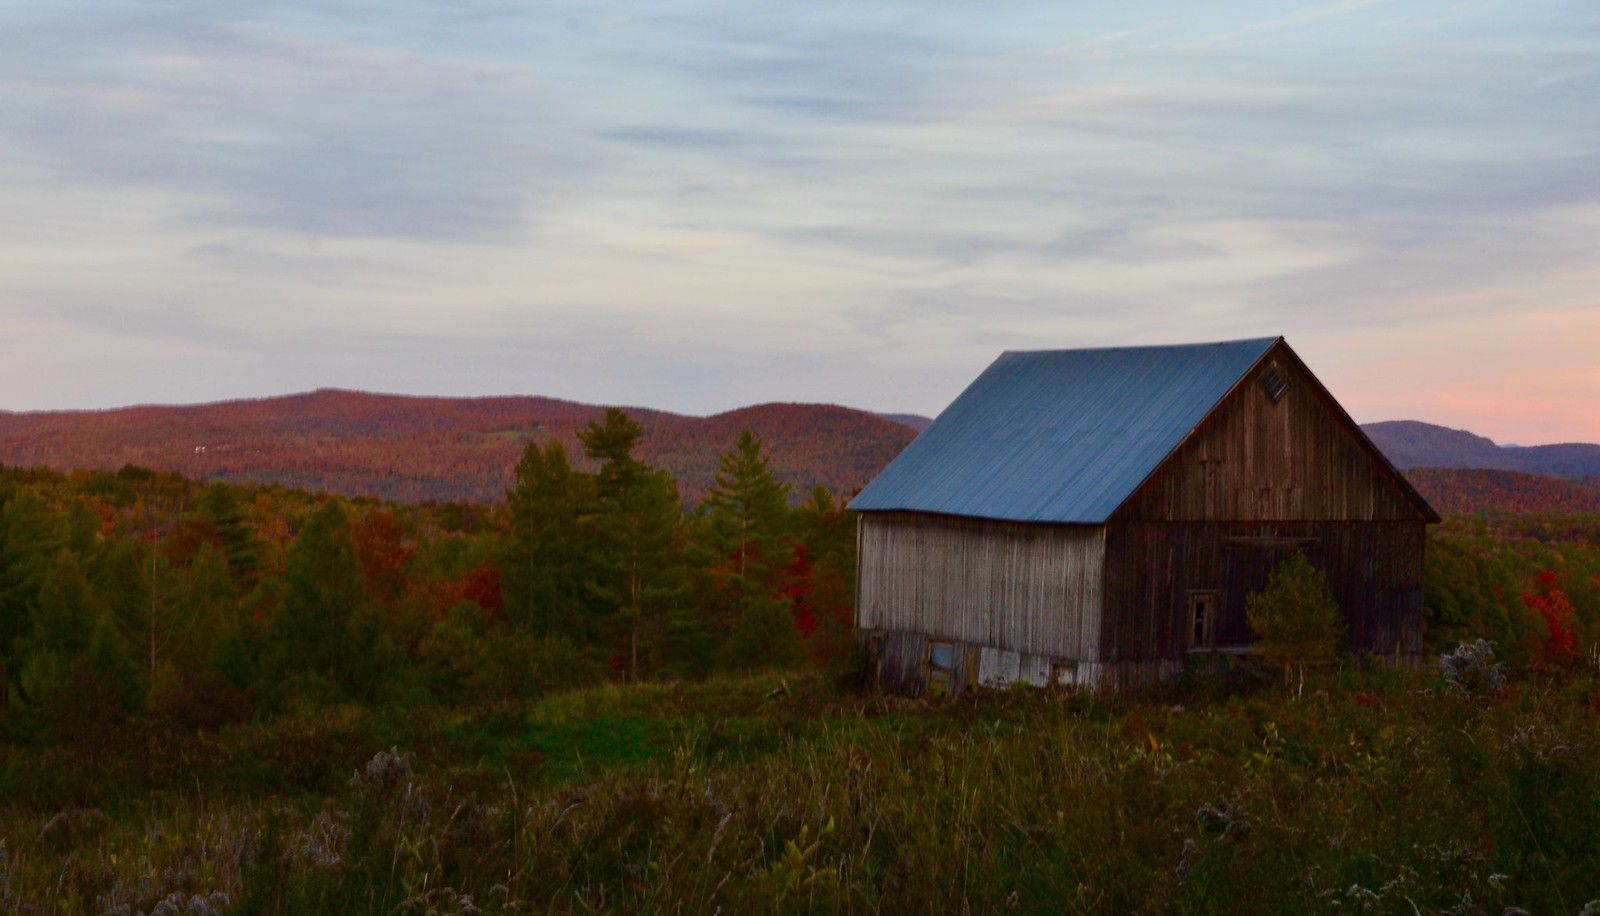 Autumn Evening, Calais, Vermont | by Artistic Approach Photography